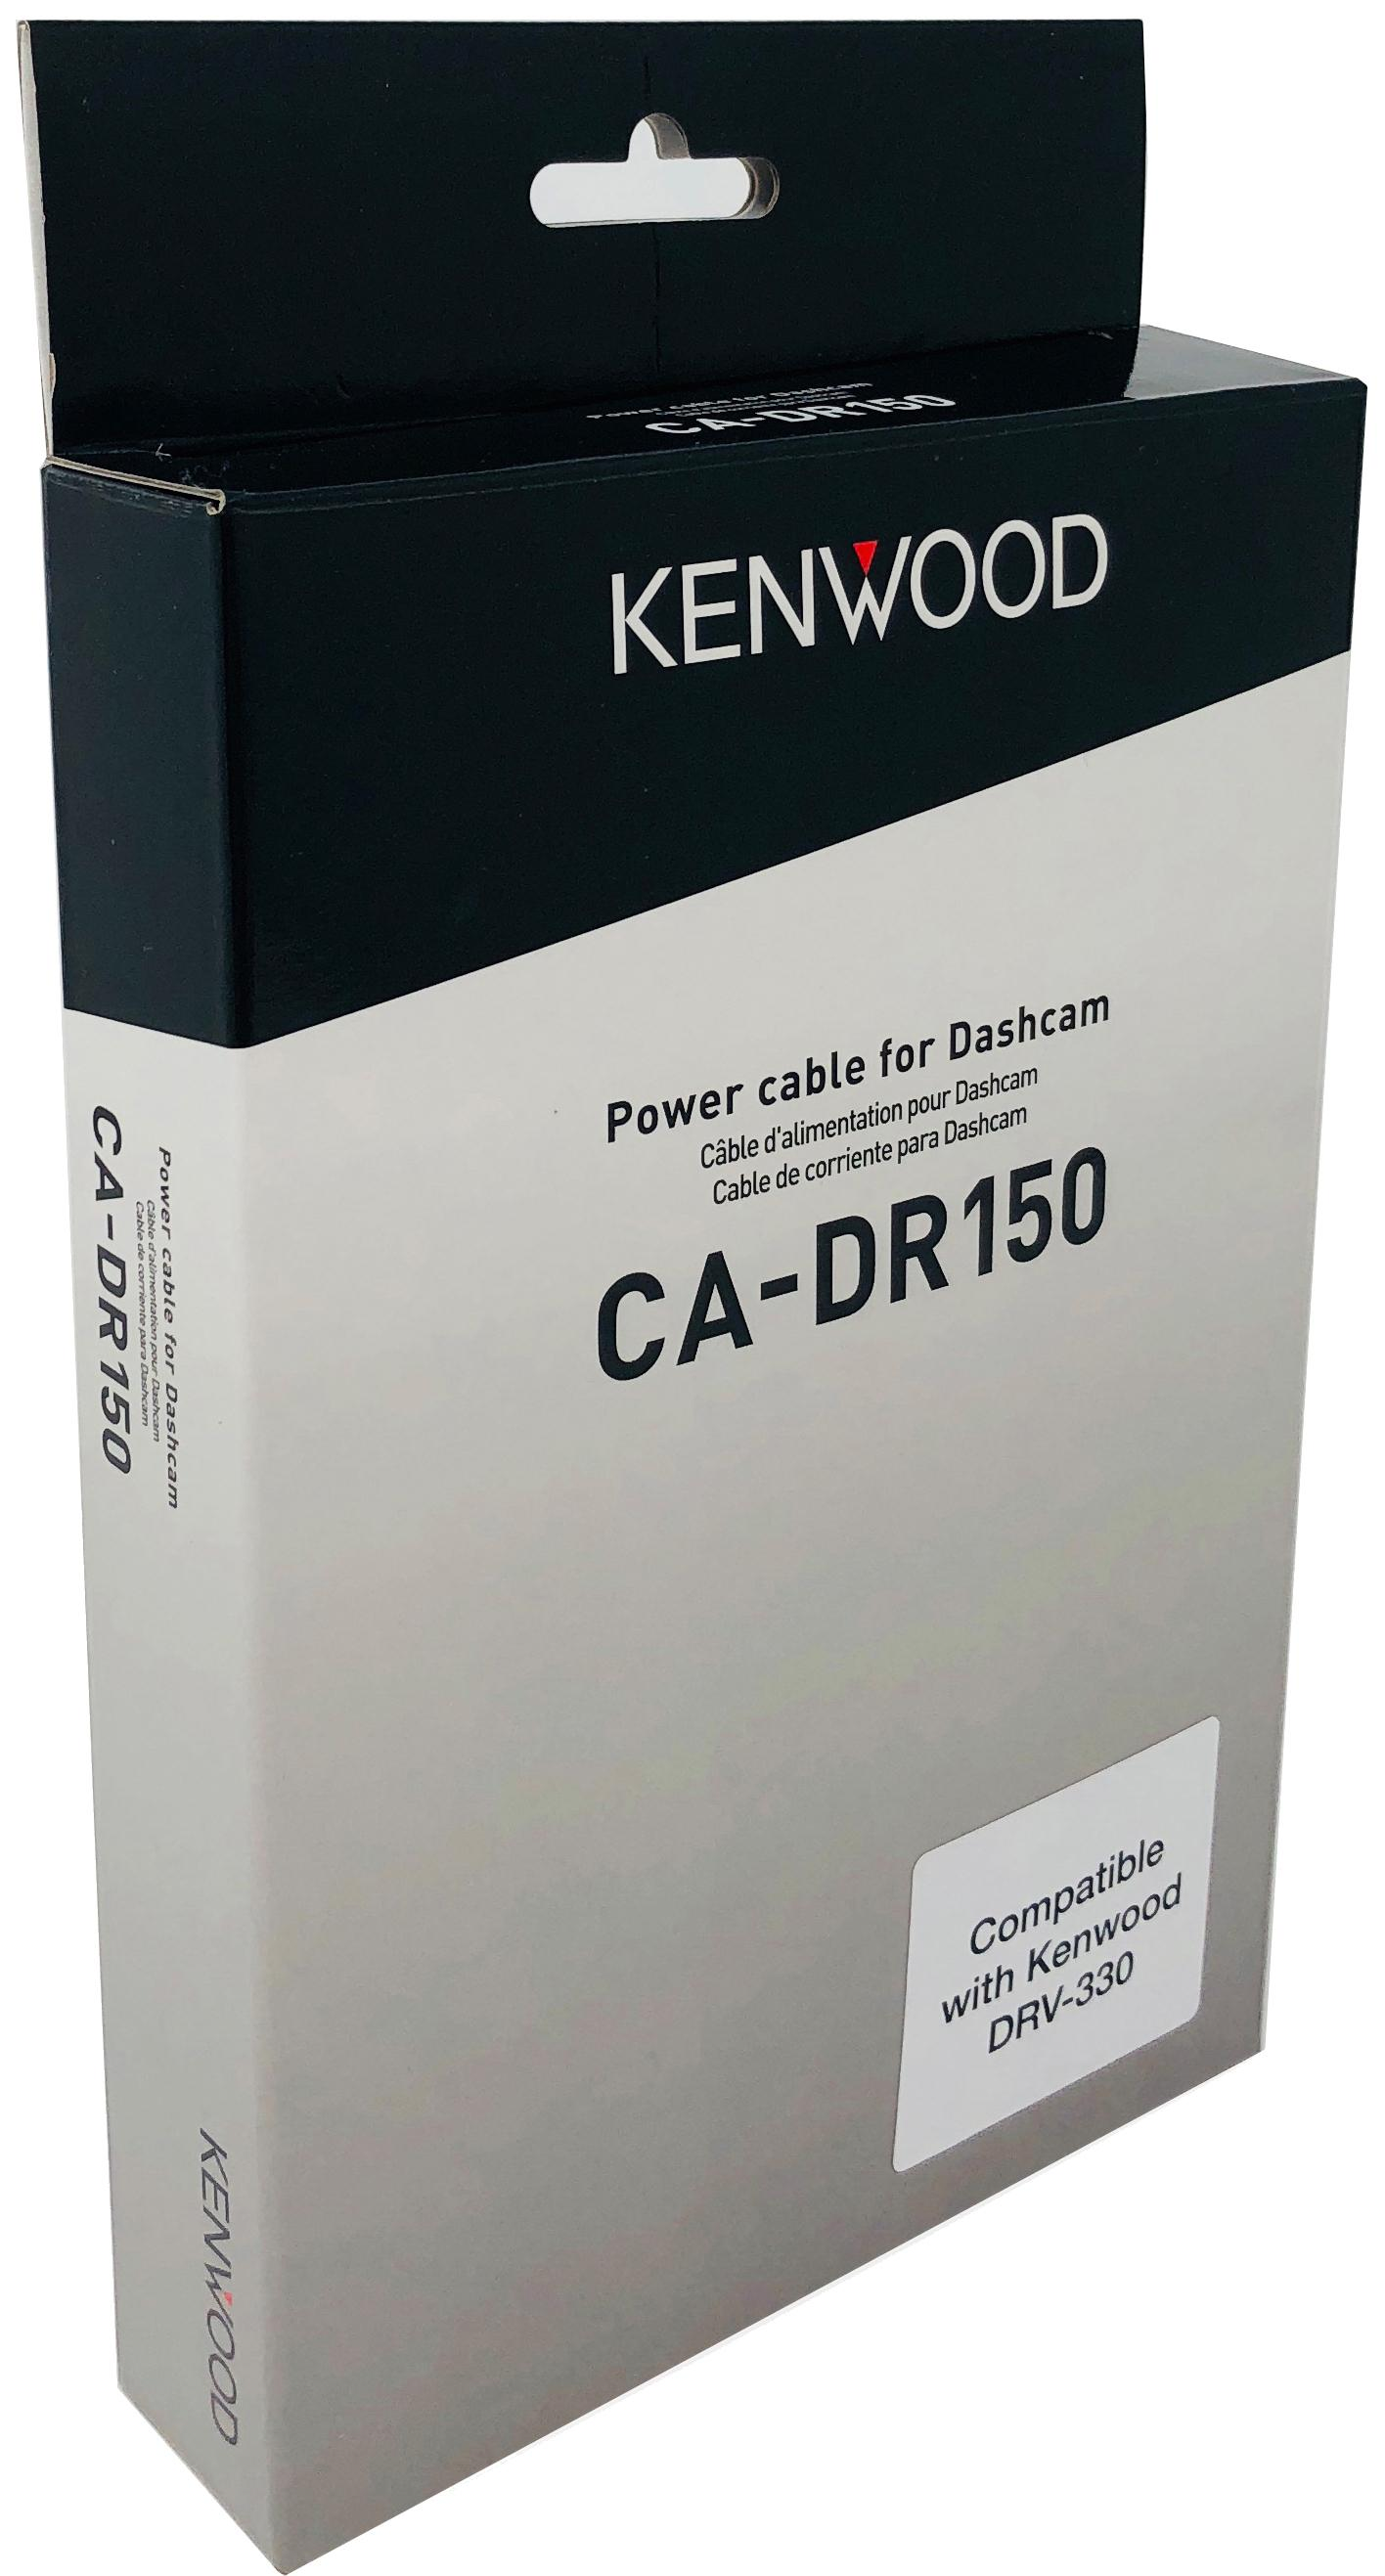 Kenwood Ca-Dr150 Hardwired Fitting Kit For Drv-330 Dash Cam